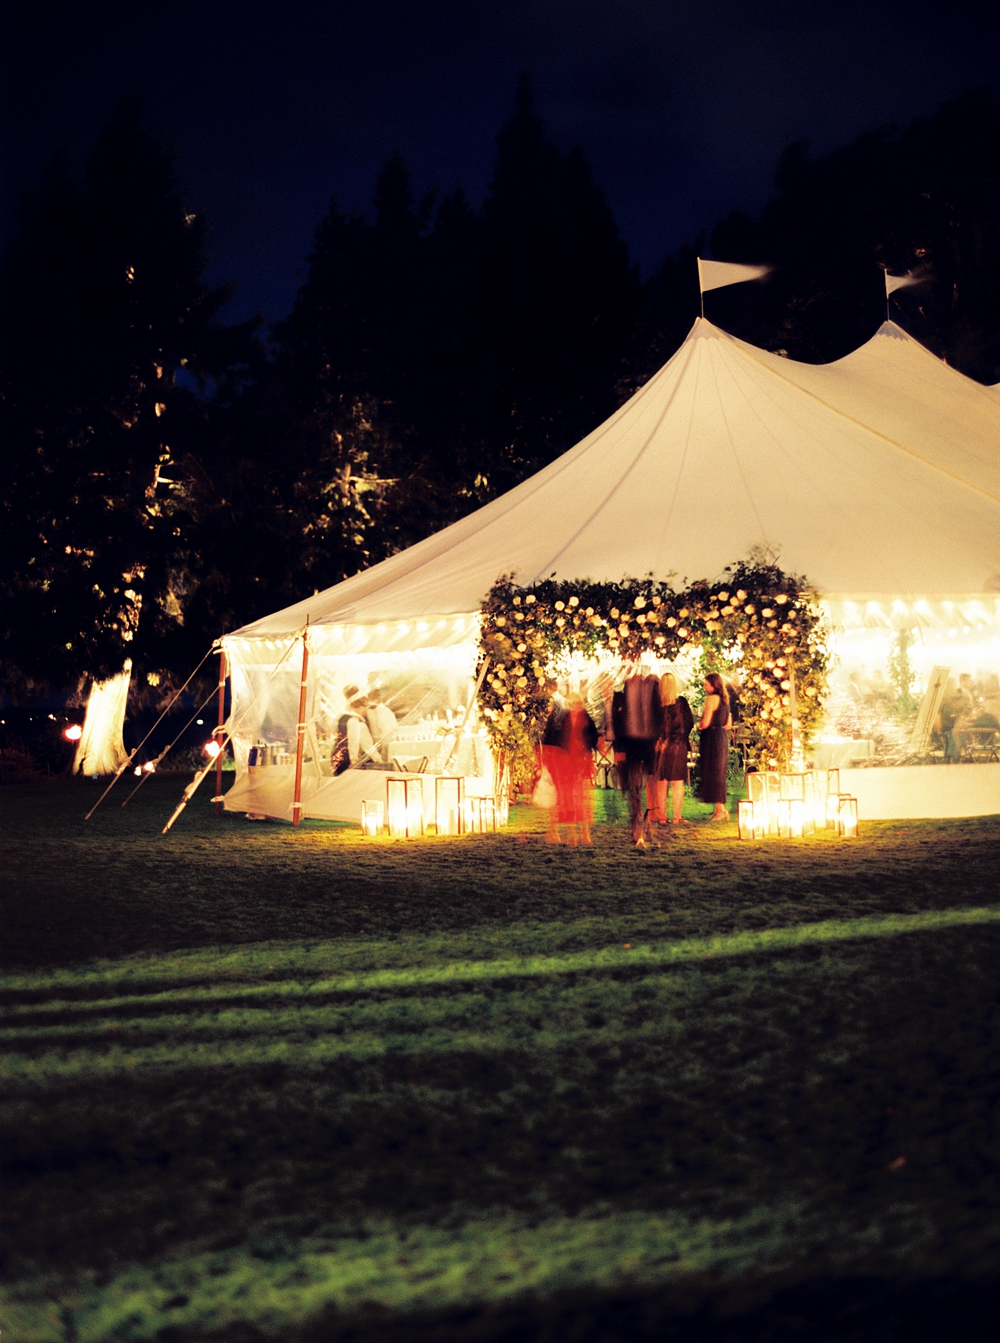 outside of the tent after dark, lit up by twinkle lights and candles